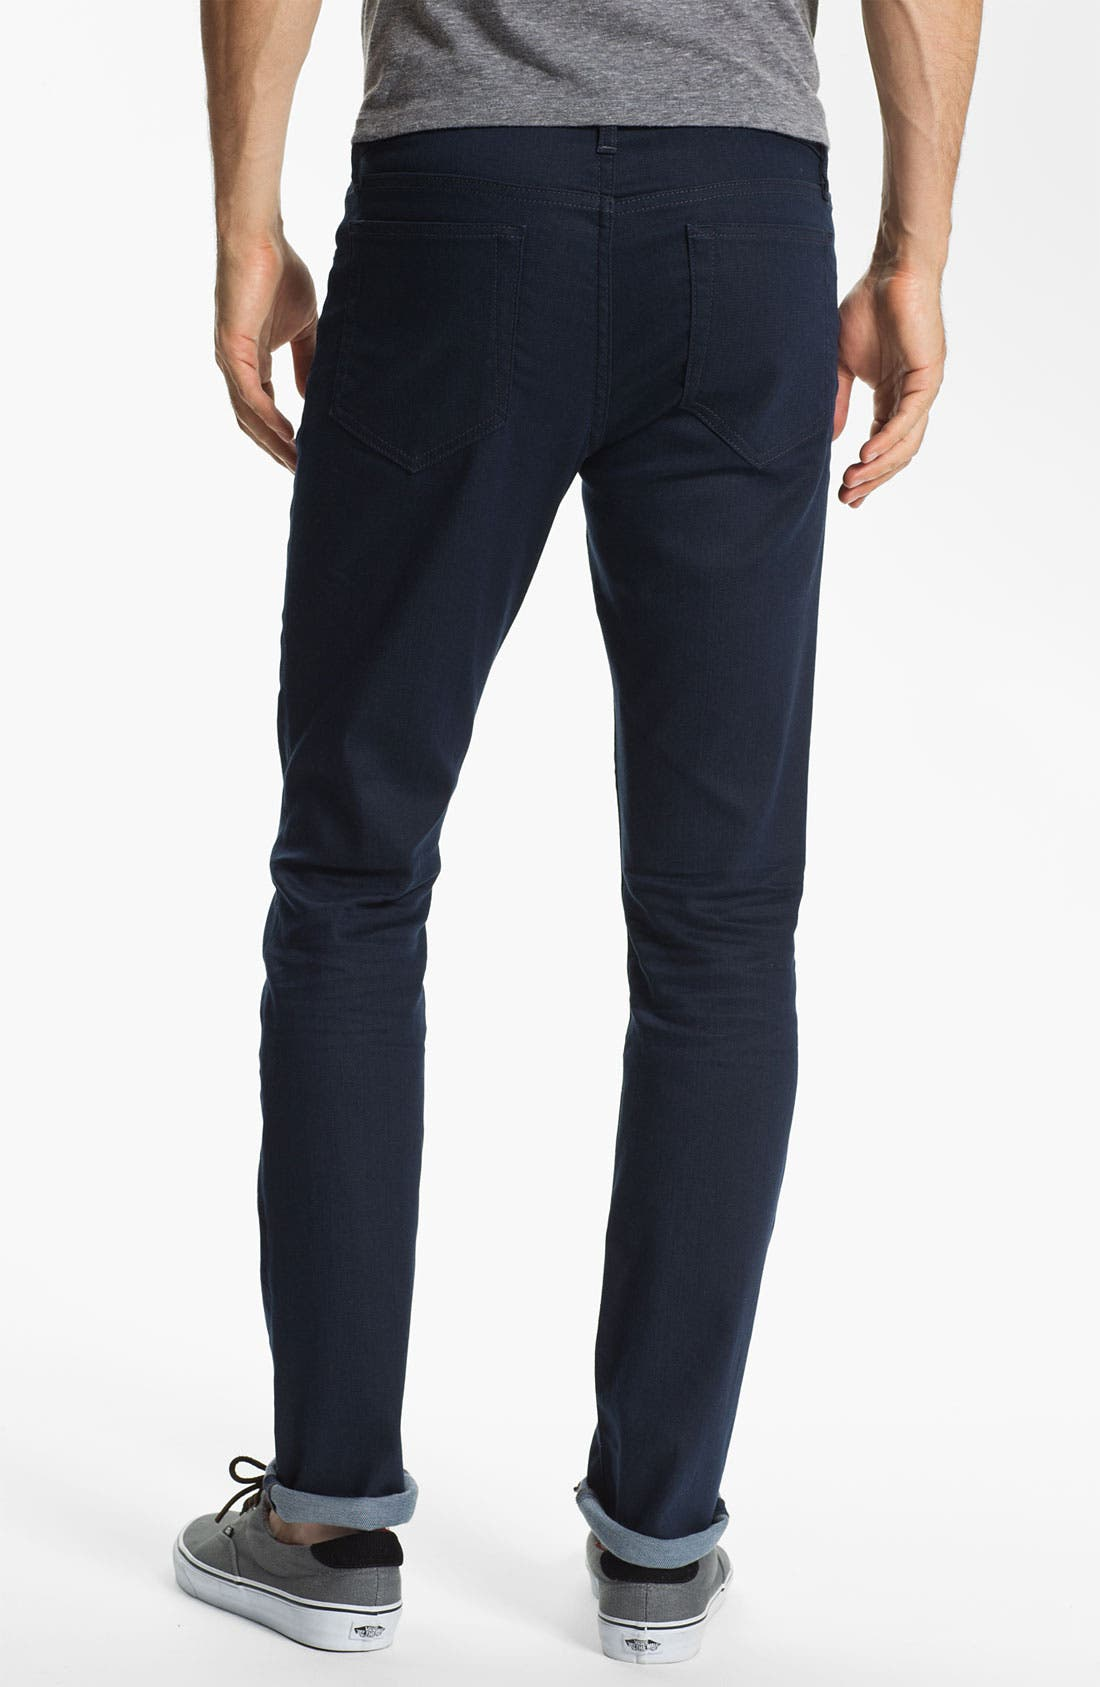 Alternate Image 1 Selected - Joe's Super Slim Straight Leg Jeans (Teddie) (Online Exclusive)